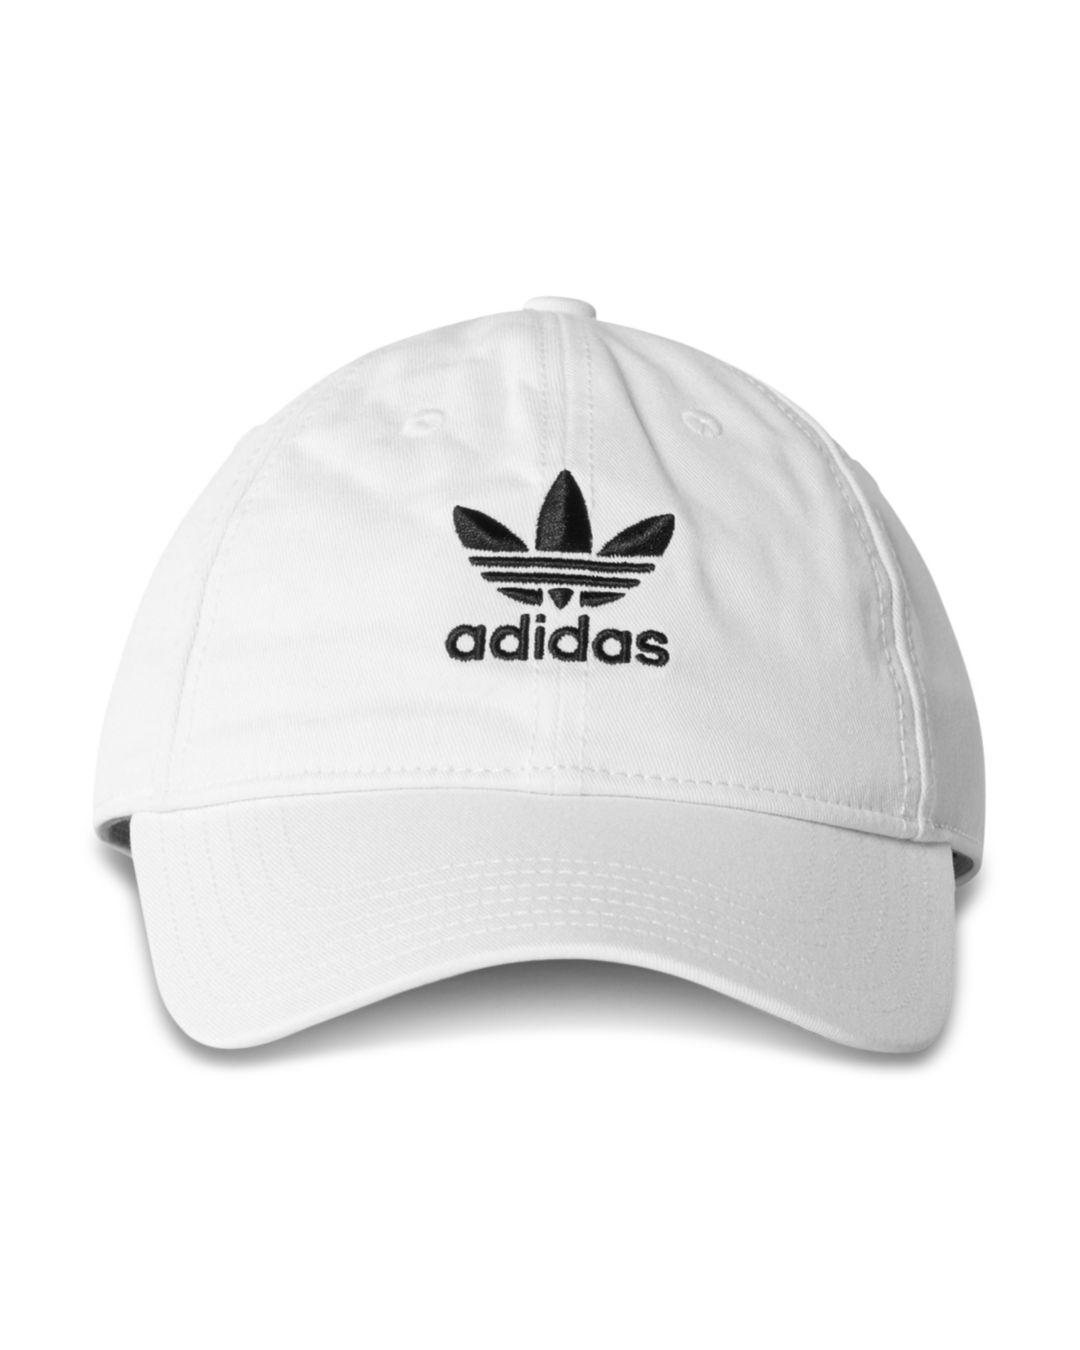 66e171d81dc Adidas Originals Relaxed Strapback Cap in White for Men - Lyst